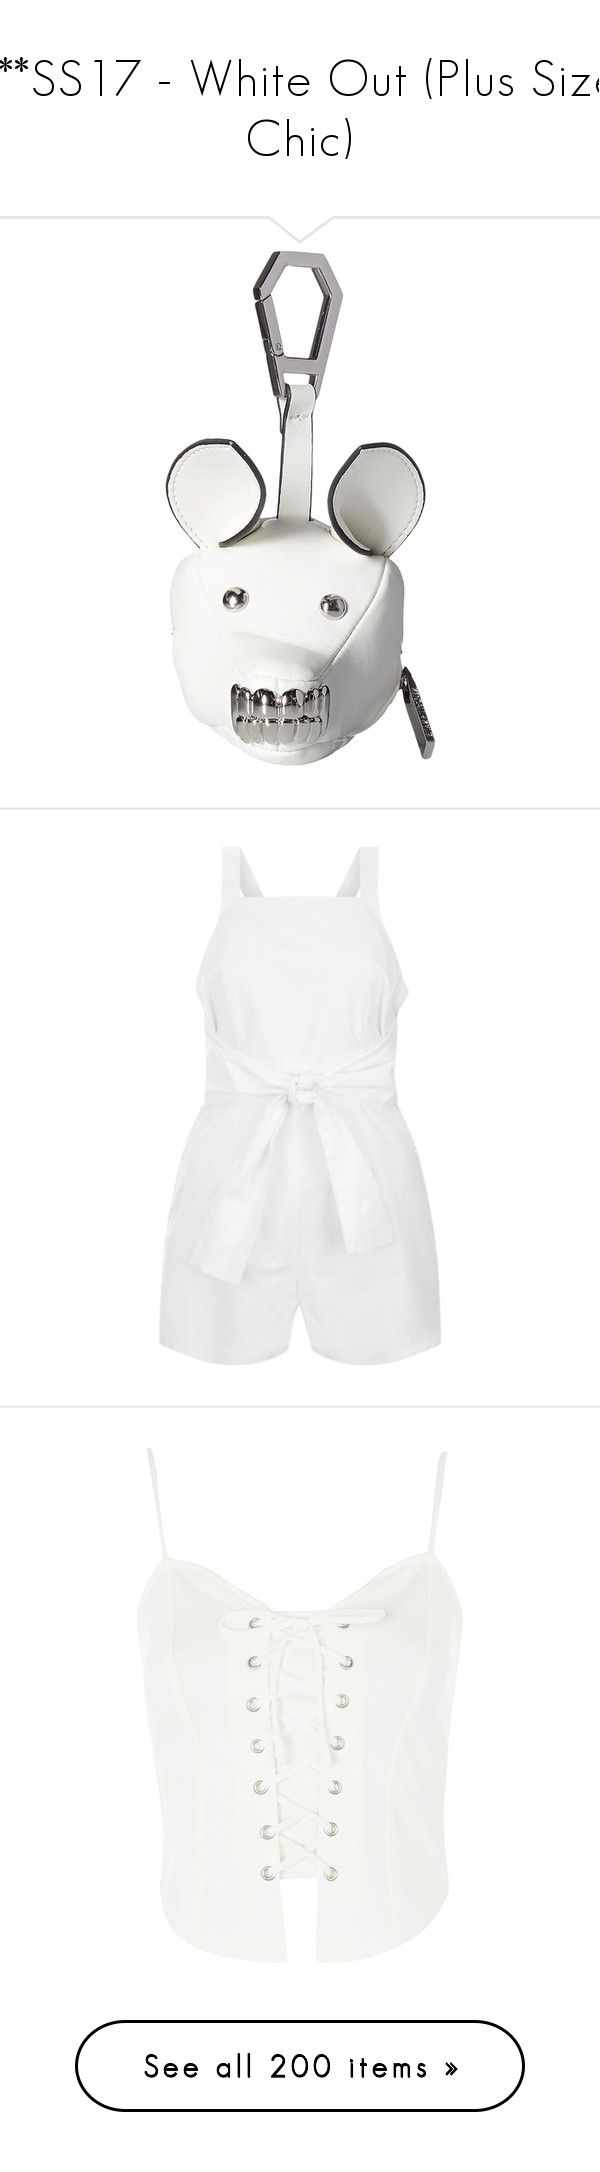 """""""***SS17 - White Out (Plus Size Chic)"""" by foolsuk ❤ liked on Polyvore featuring bags, wallets, handbags, shoulder bags, leather shoulder bag, shoulder strap handbags, leather crossbody purse, white leather shoulder bag, leather crossbody and intimates"""